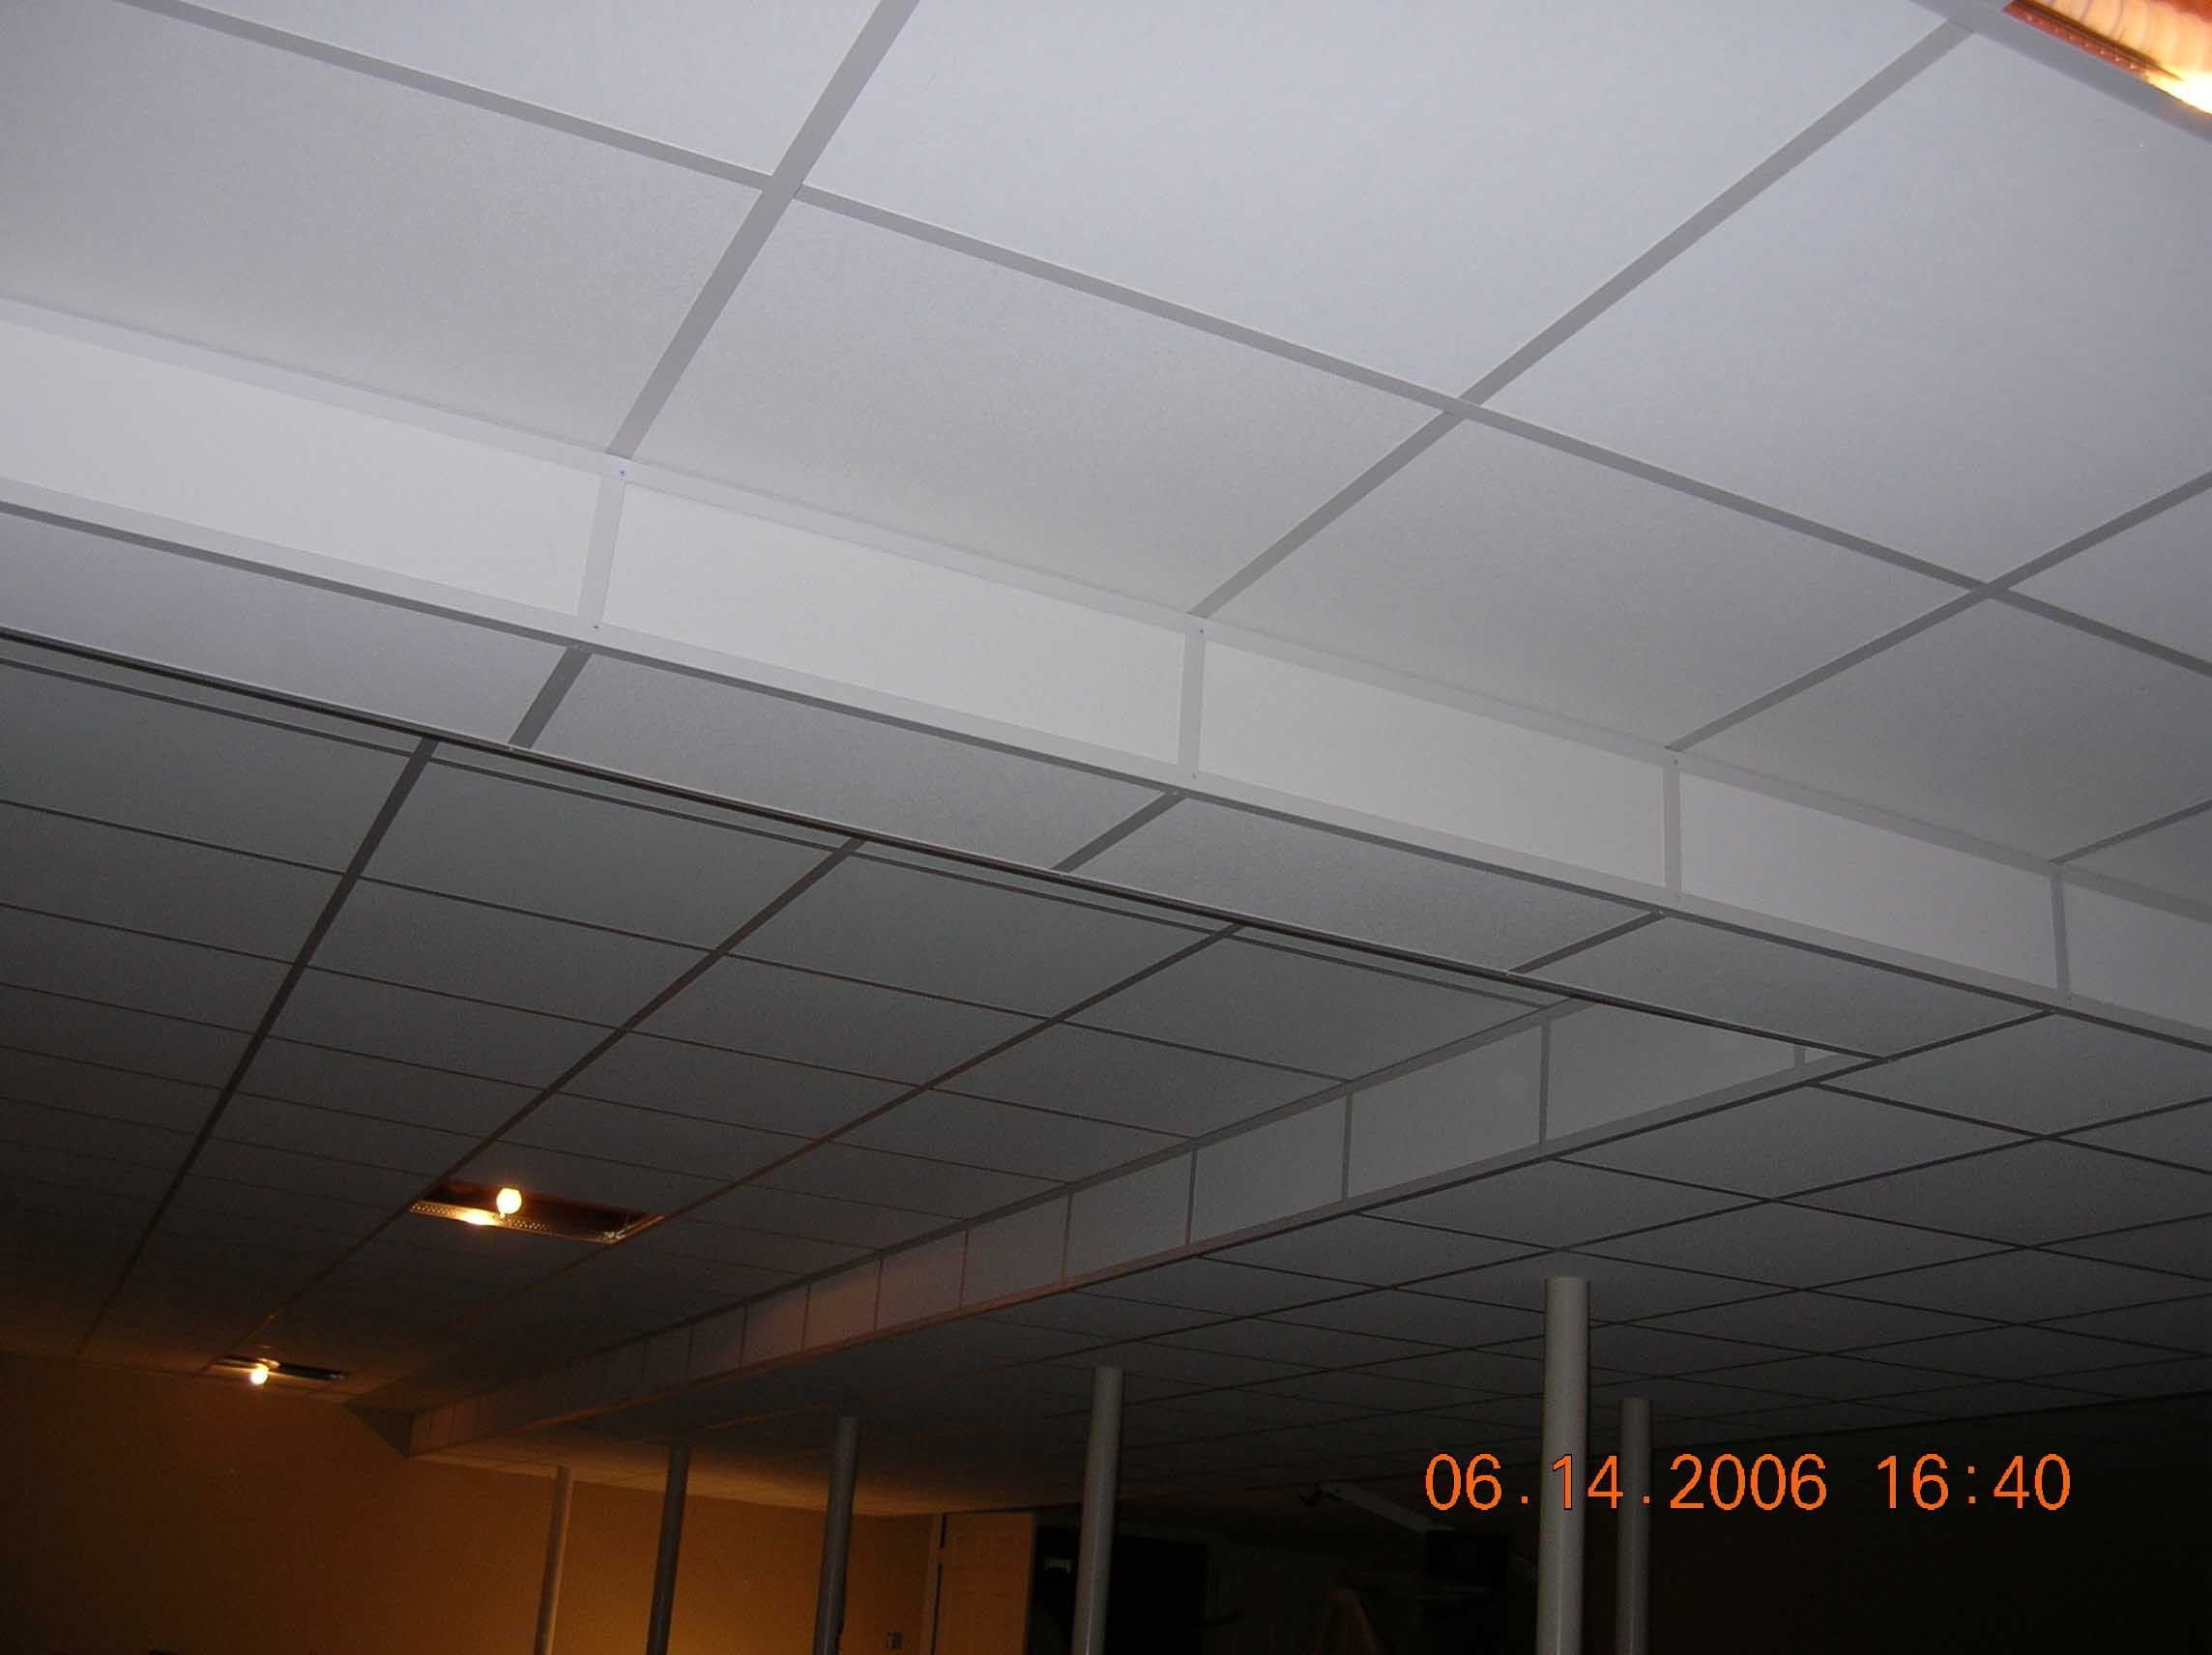 aluminum stretched exterior ceiling ceilling tilesexterior mesh tiles down ceilings drop suspended